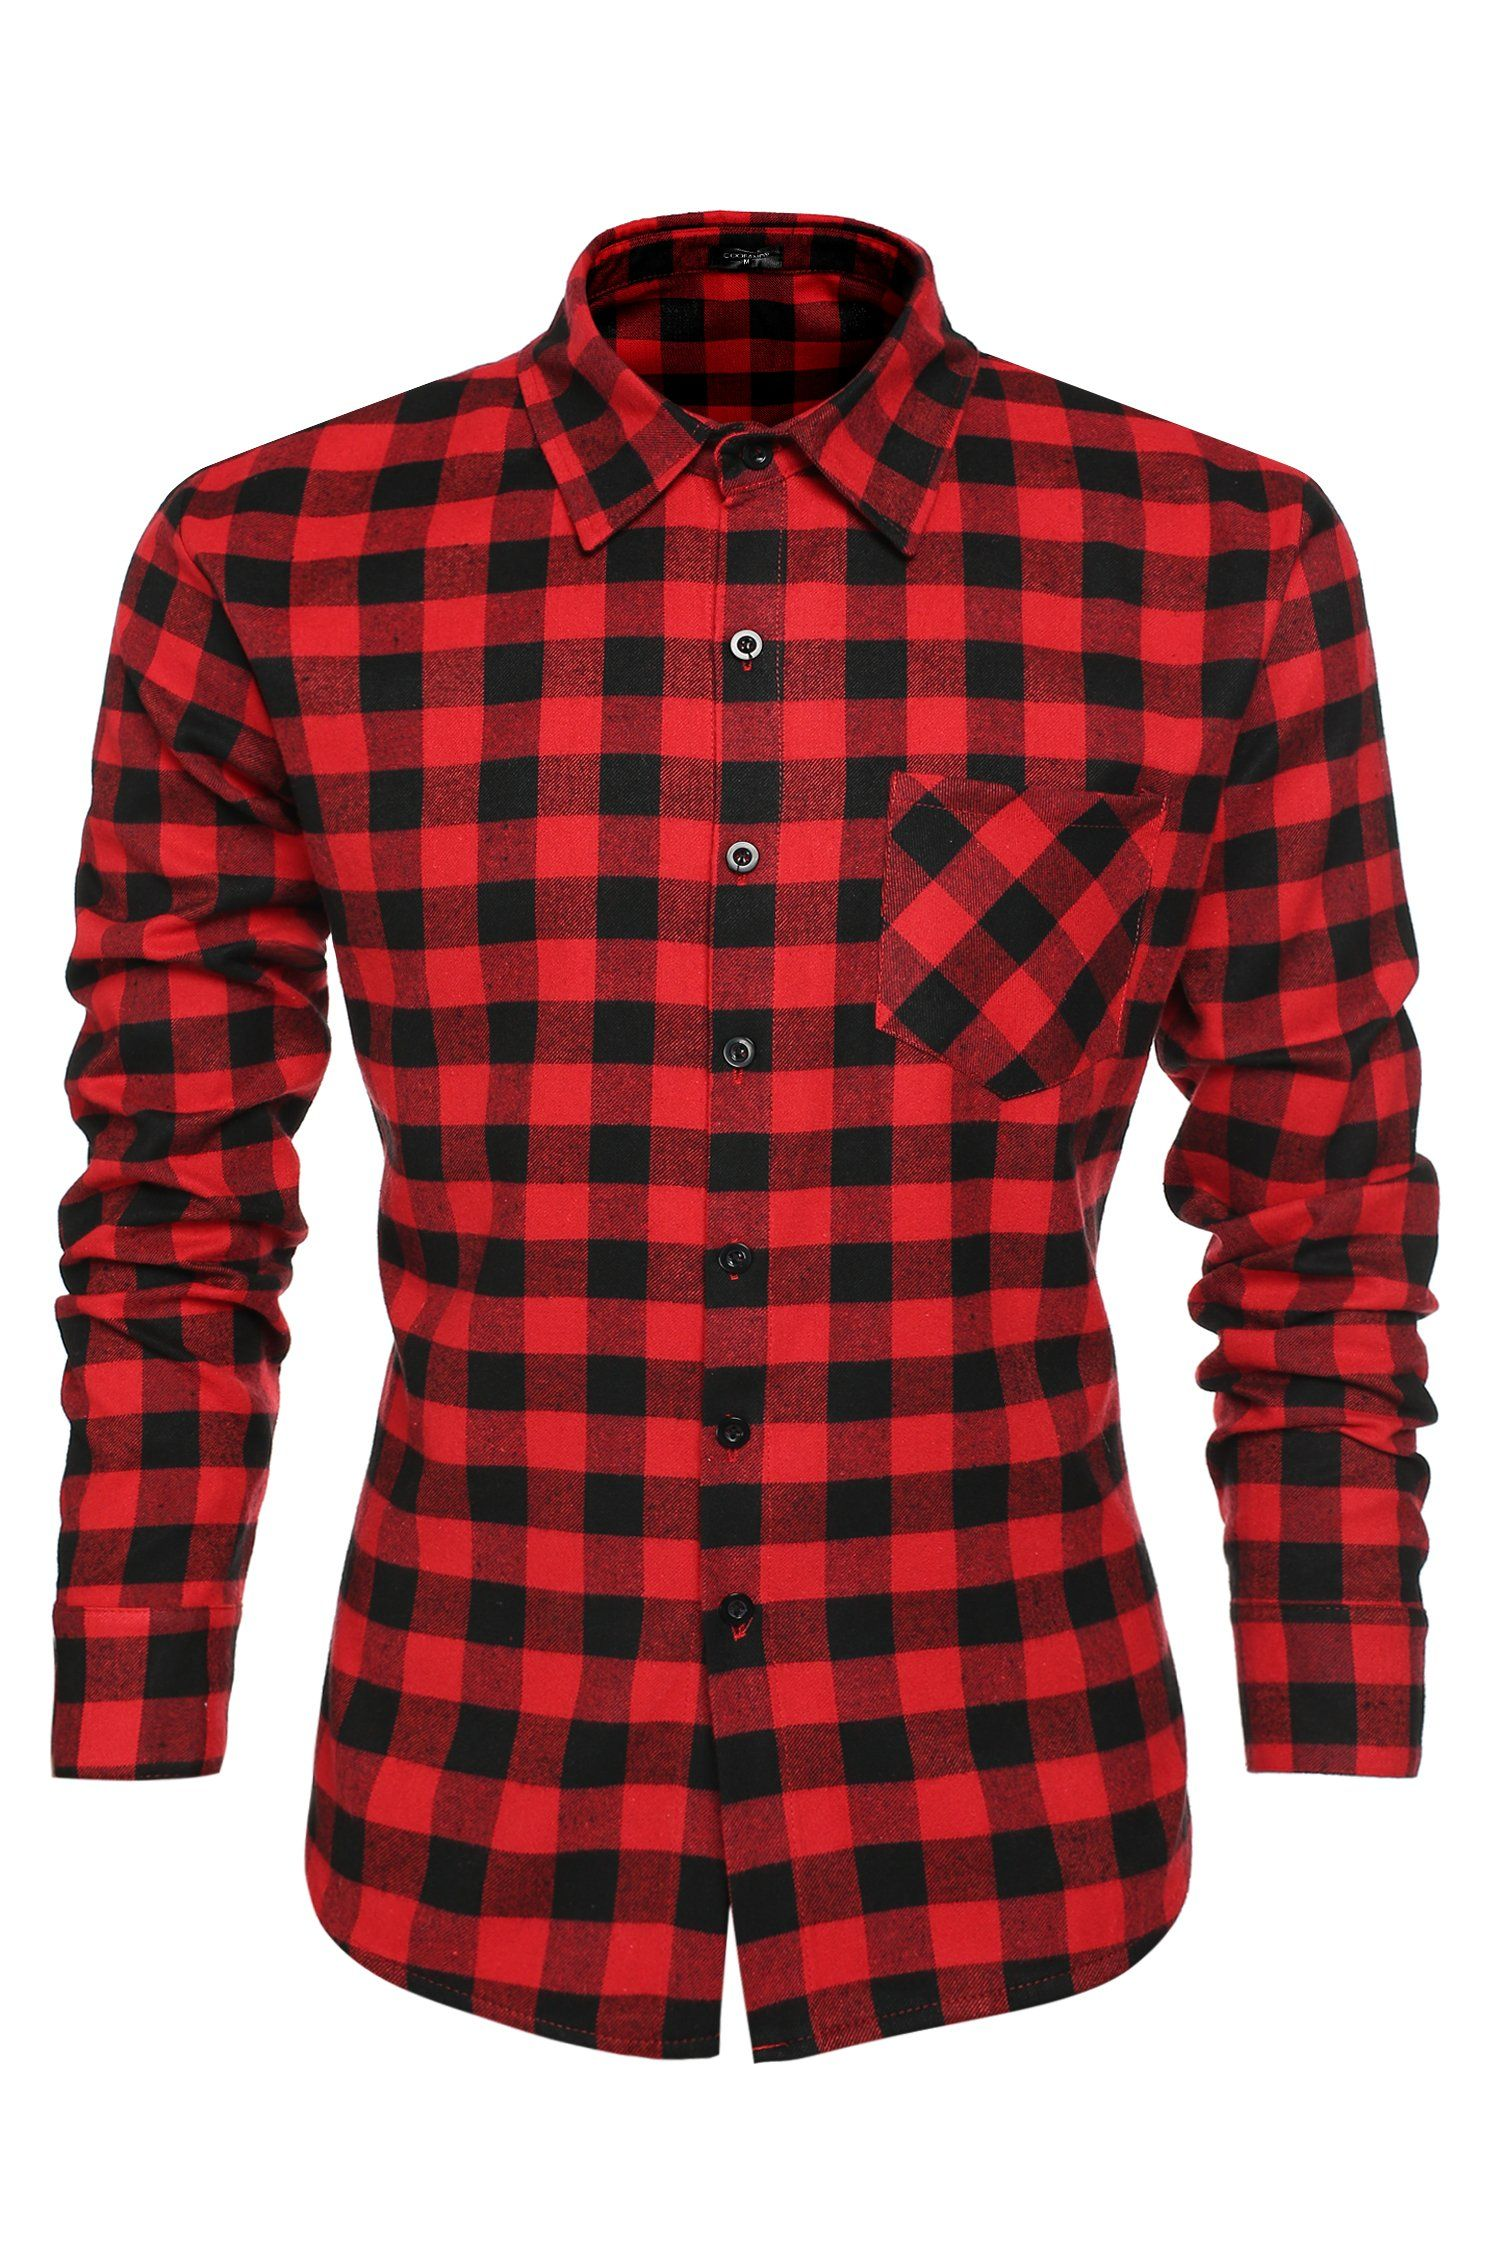 4e533273 Coofandy Men's Casual Plaid Long Sleeve Shirt Slim Fit T-shirts at Amazon  Men's Clothing store: